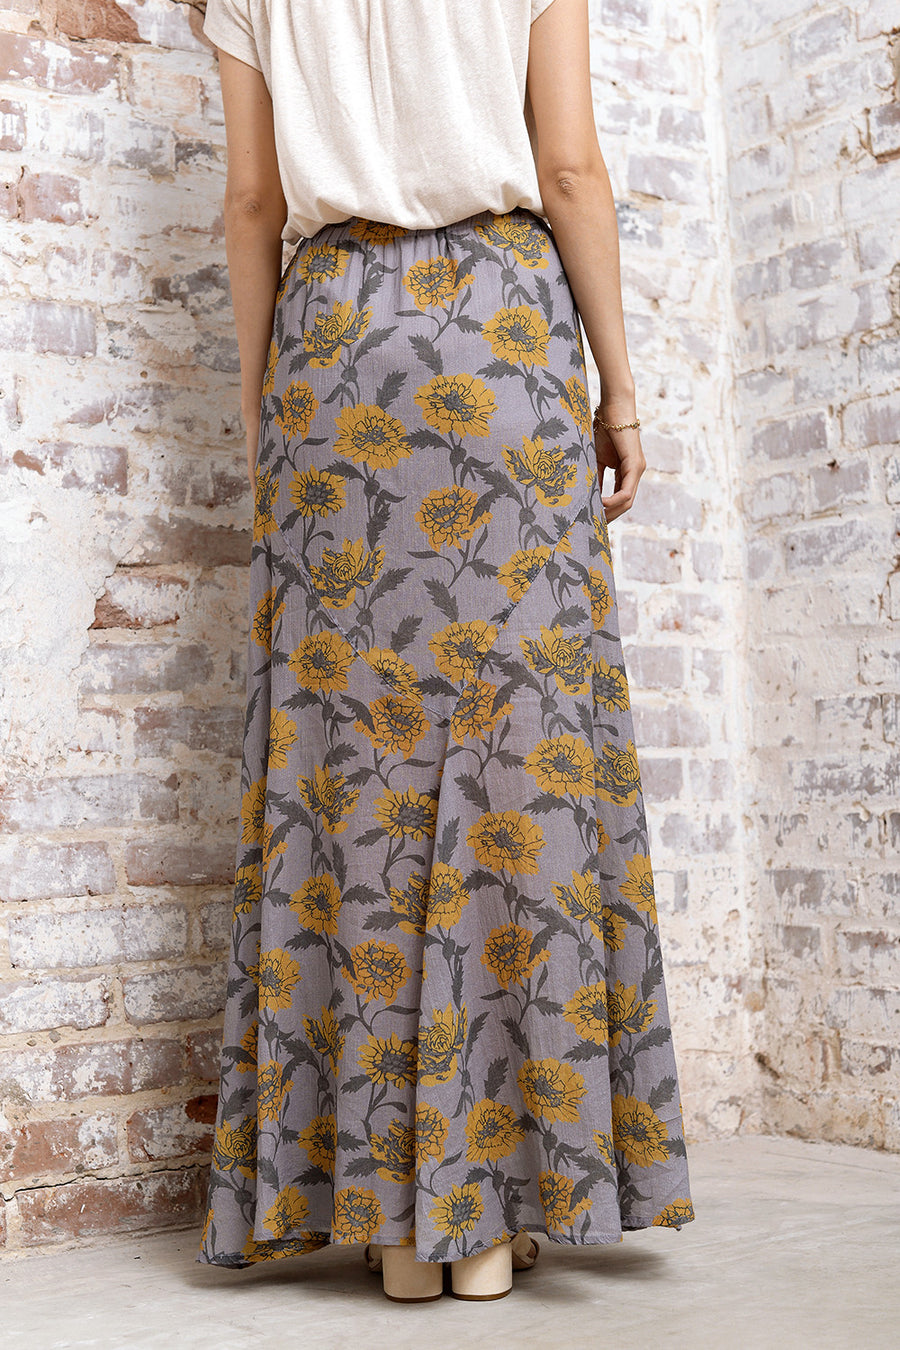 Galimo Skirt - sunflower